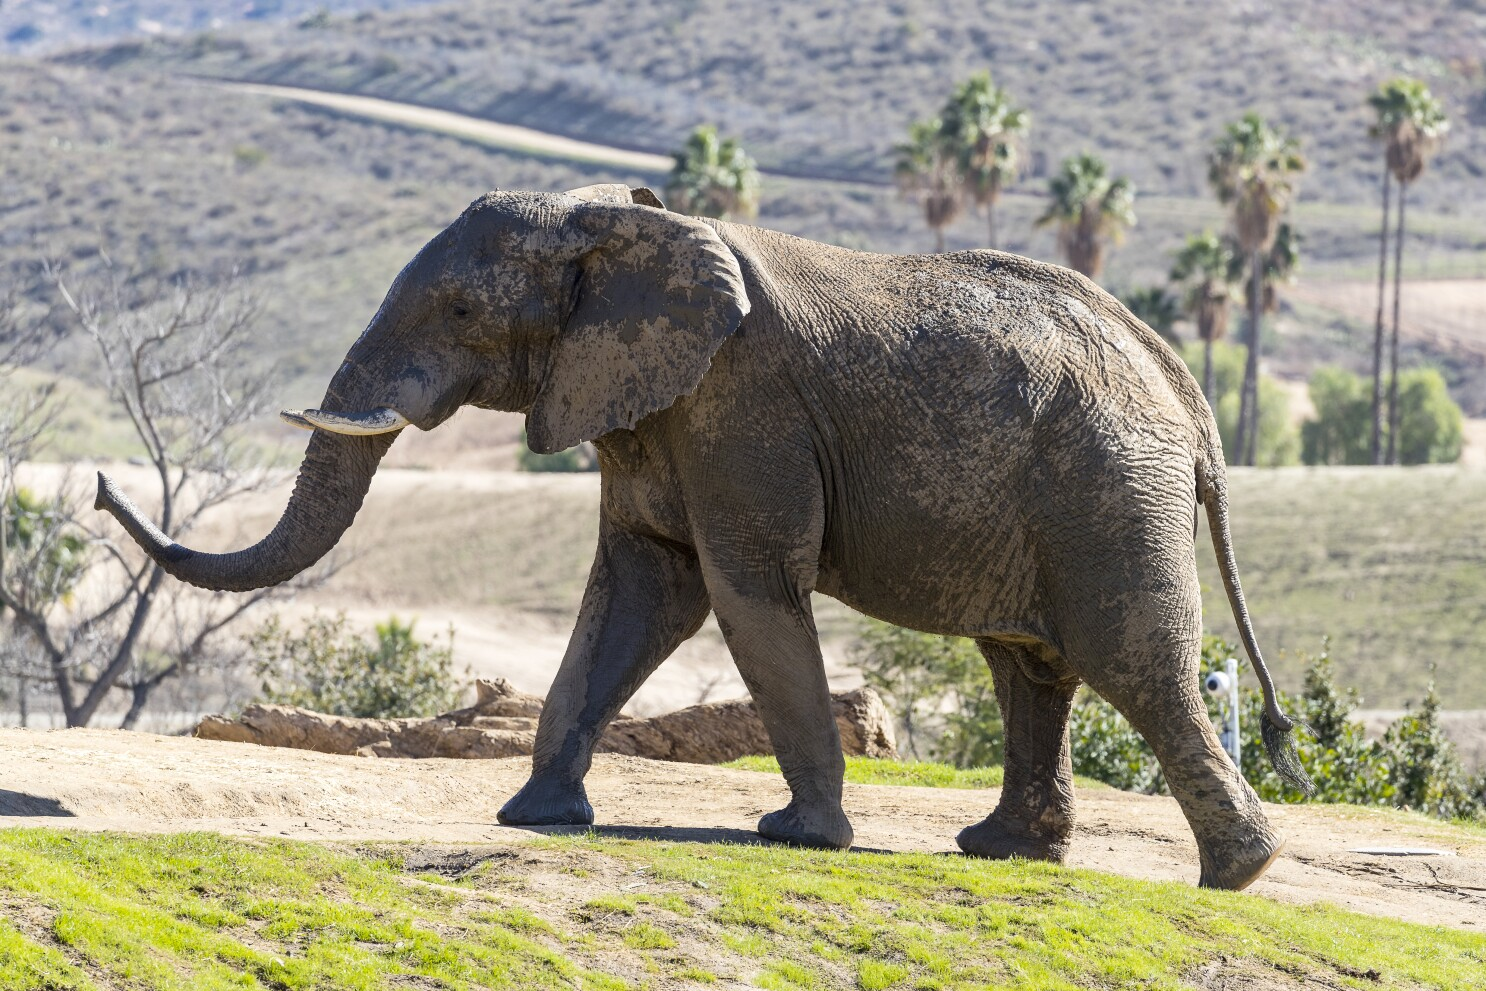 Msholo the African elephant leaves San Diego Zoo Safari Park for new home, companions